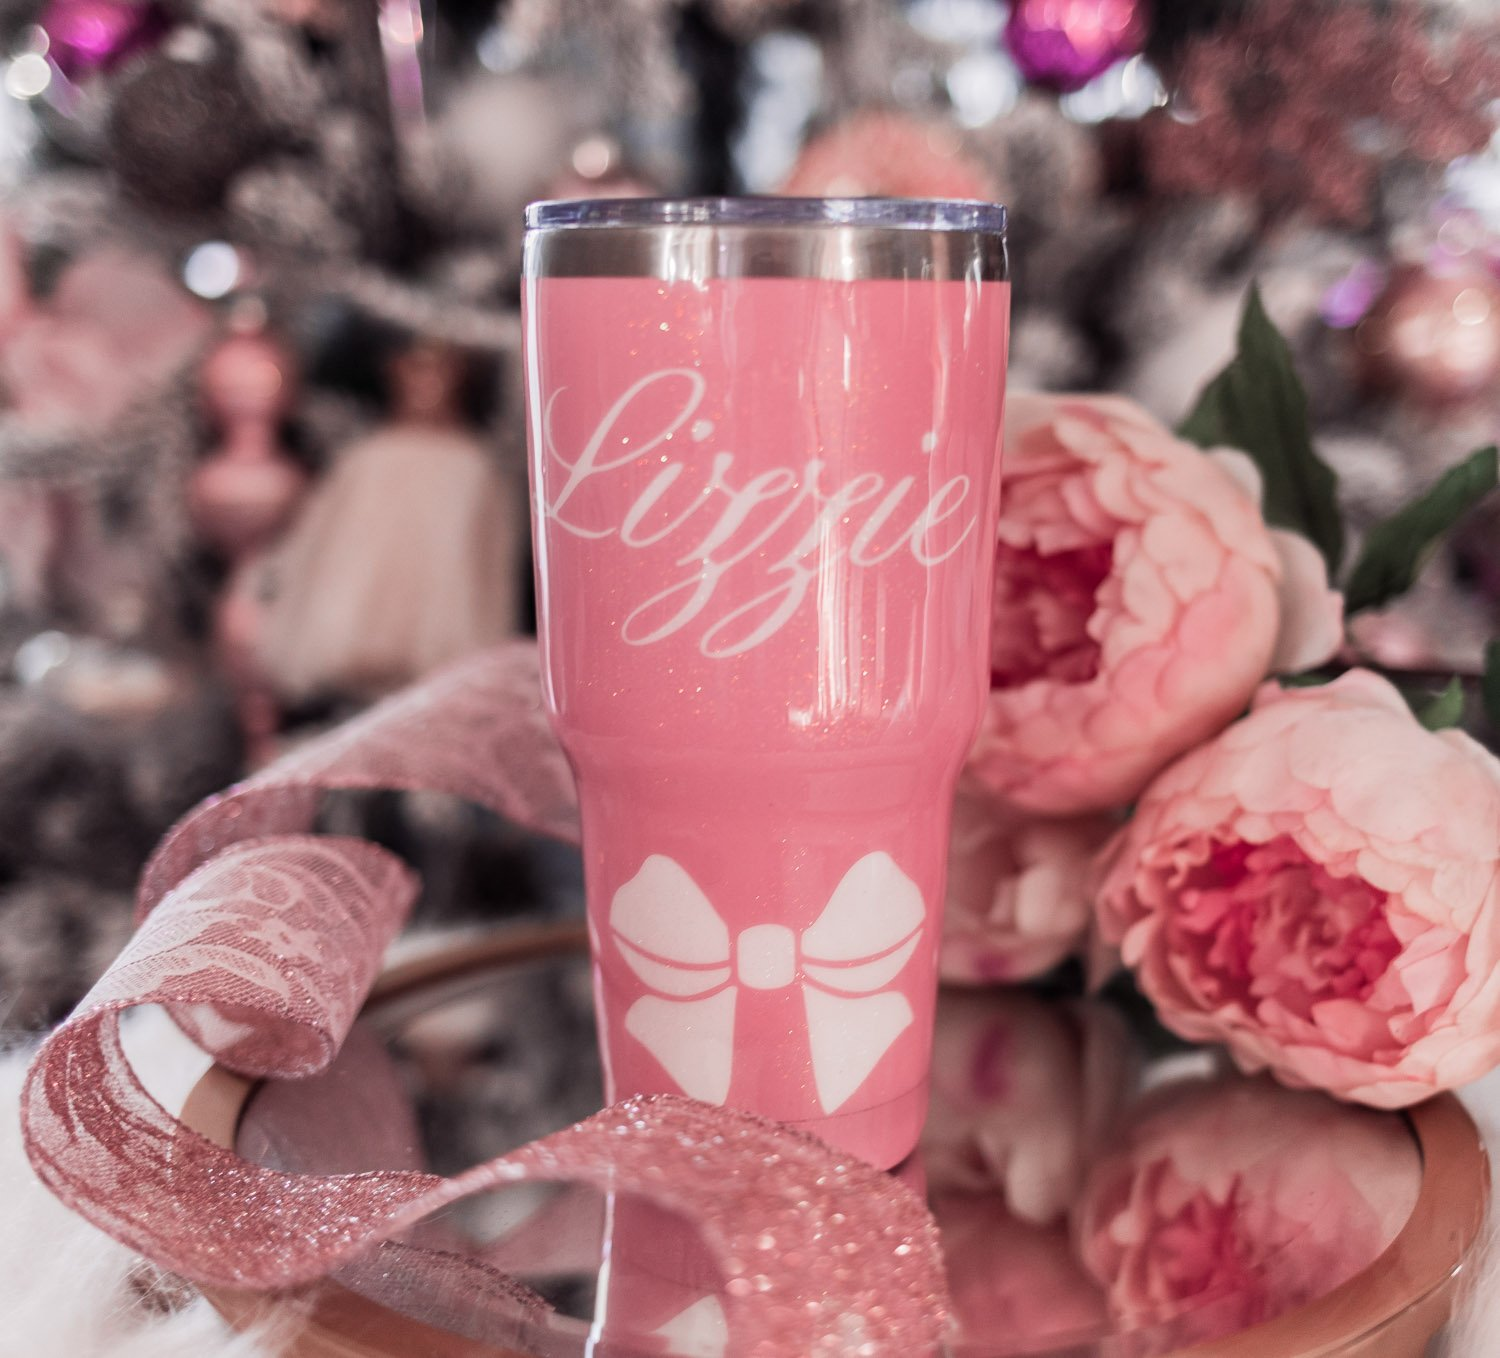 Fashion Blogger Elizabeth Hugen shares her Girly Girl Holiday Gift Guide including a pink bow tumbler